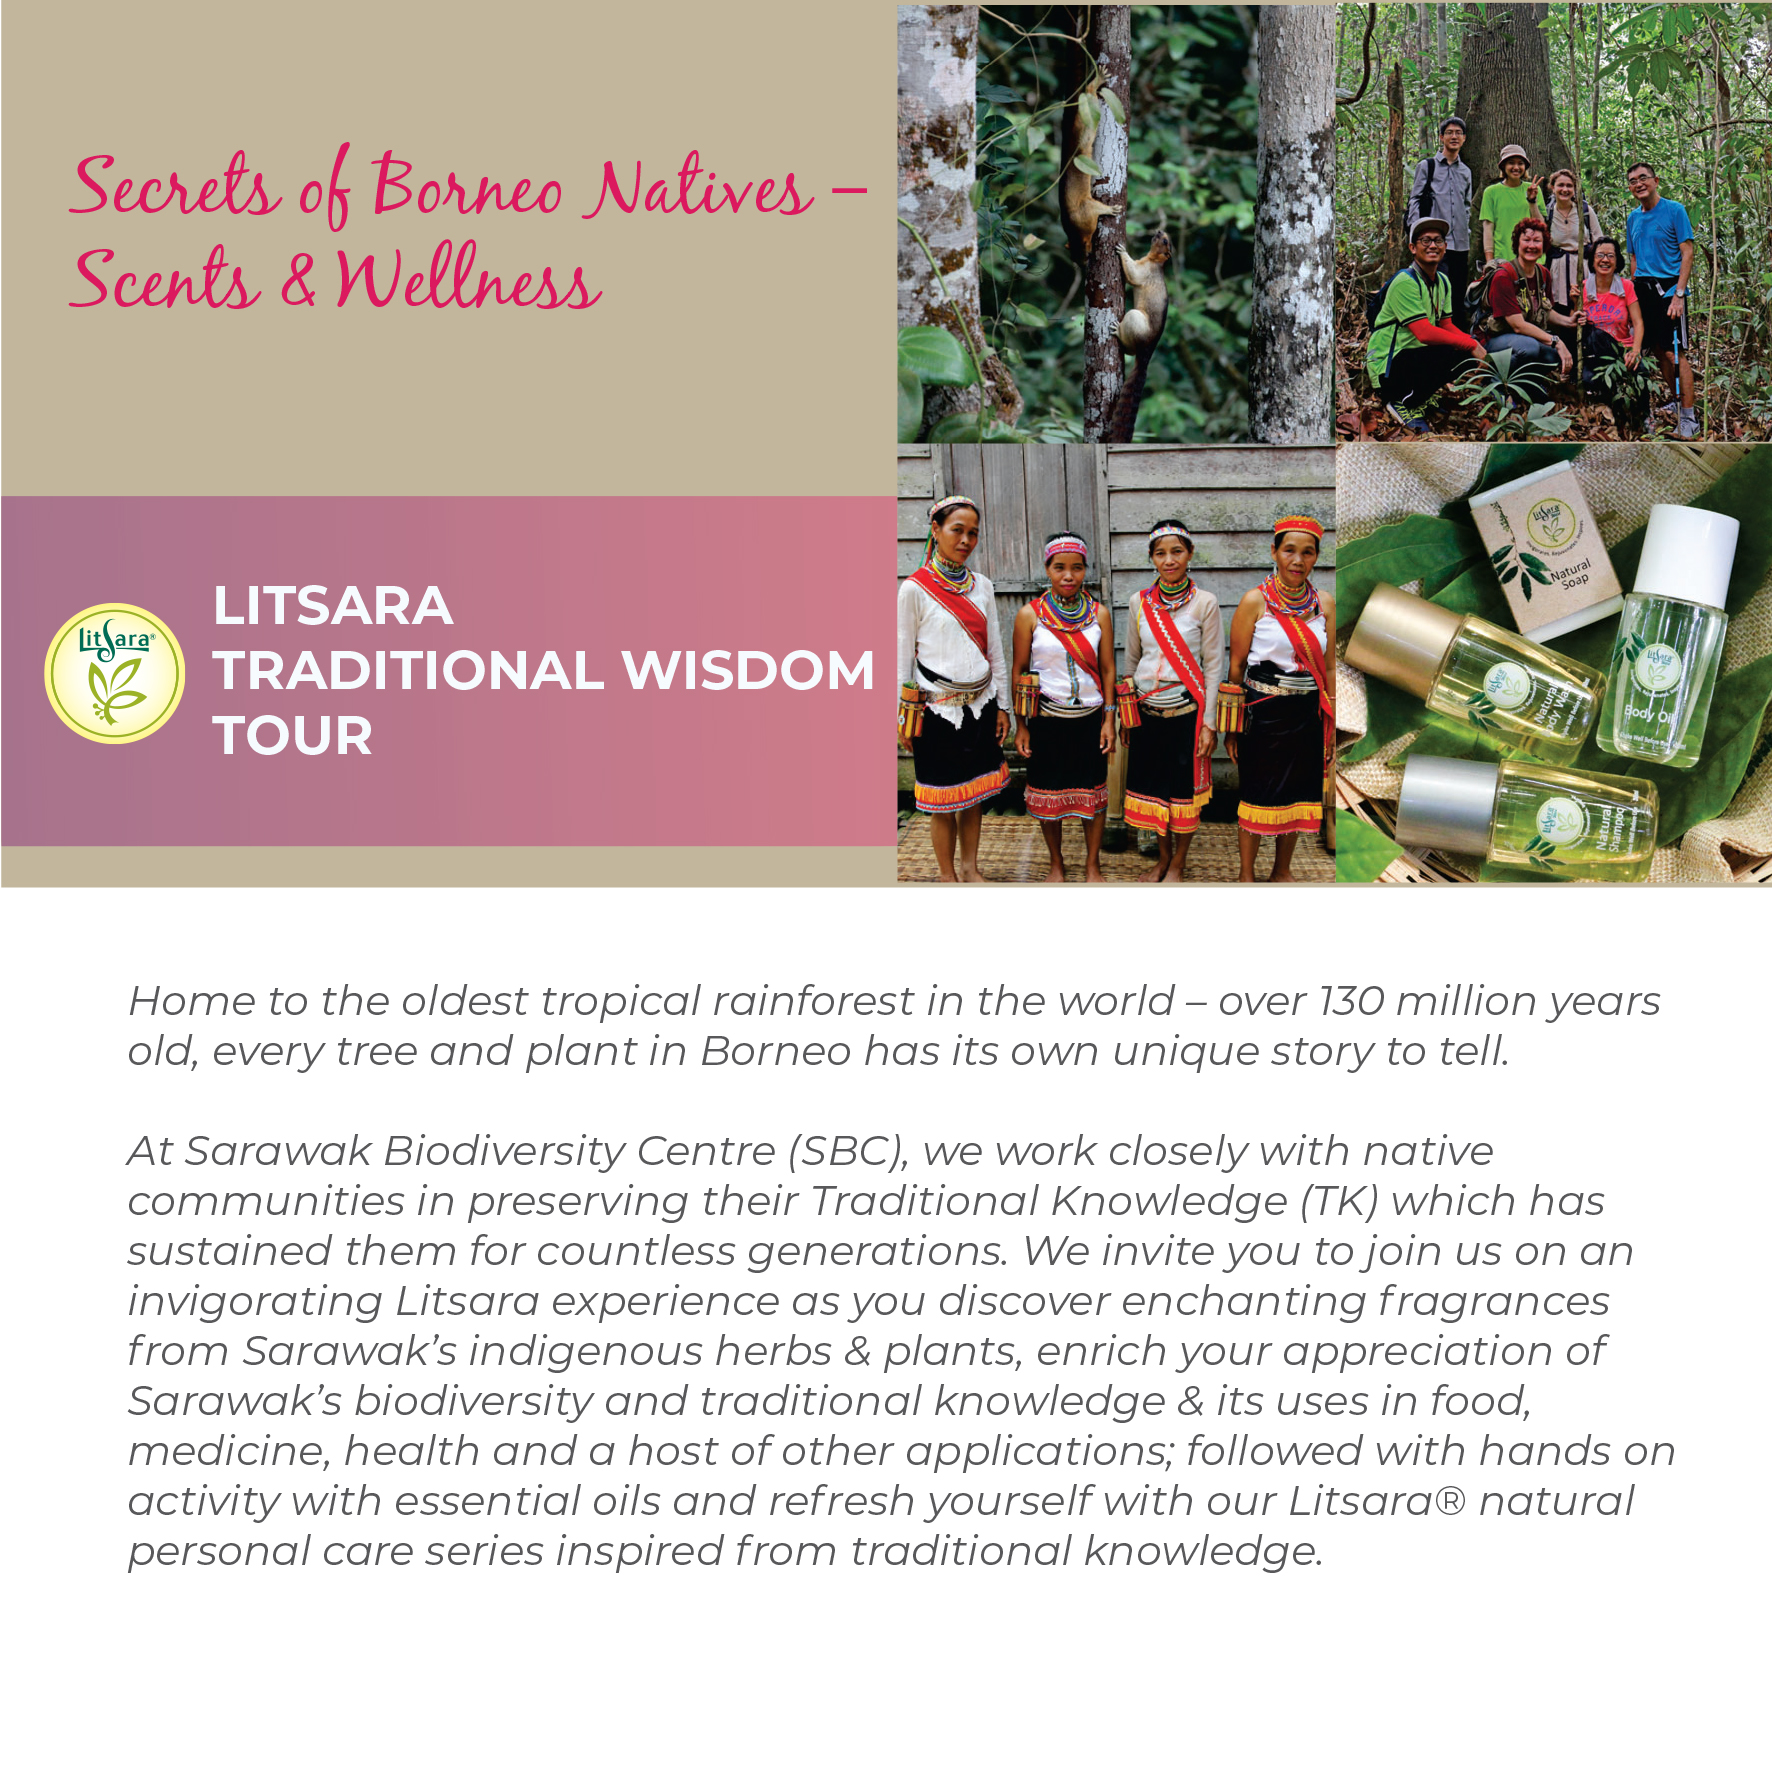 LitSara Traditional Wisdom Tour Leaflet